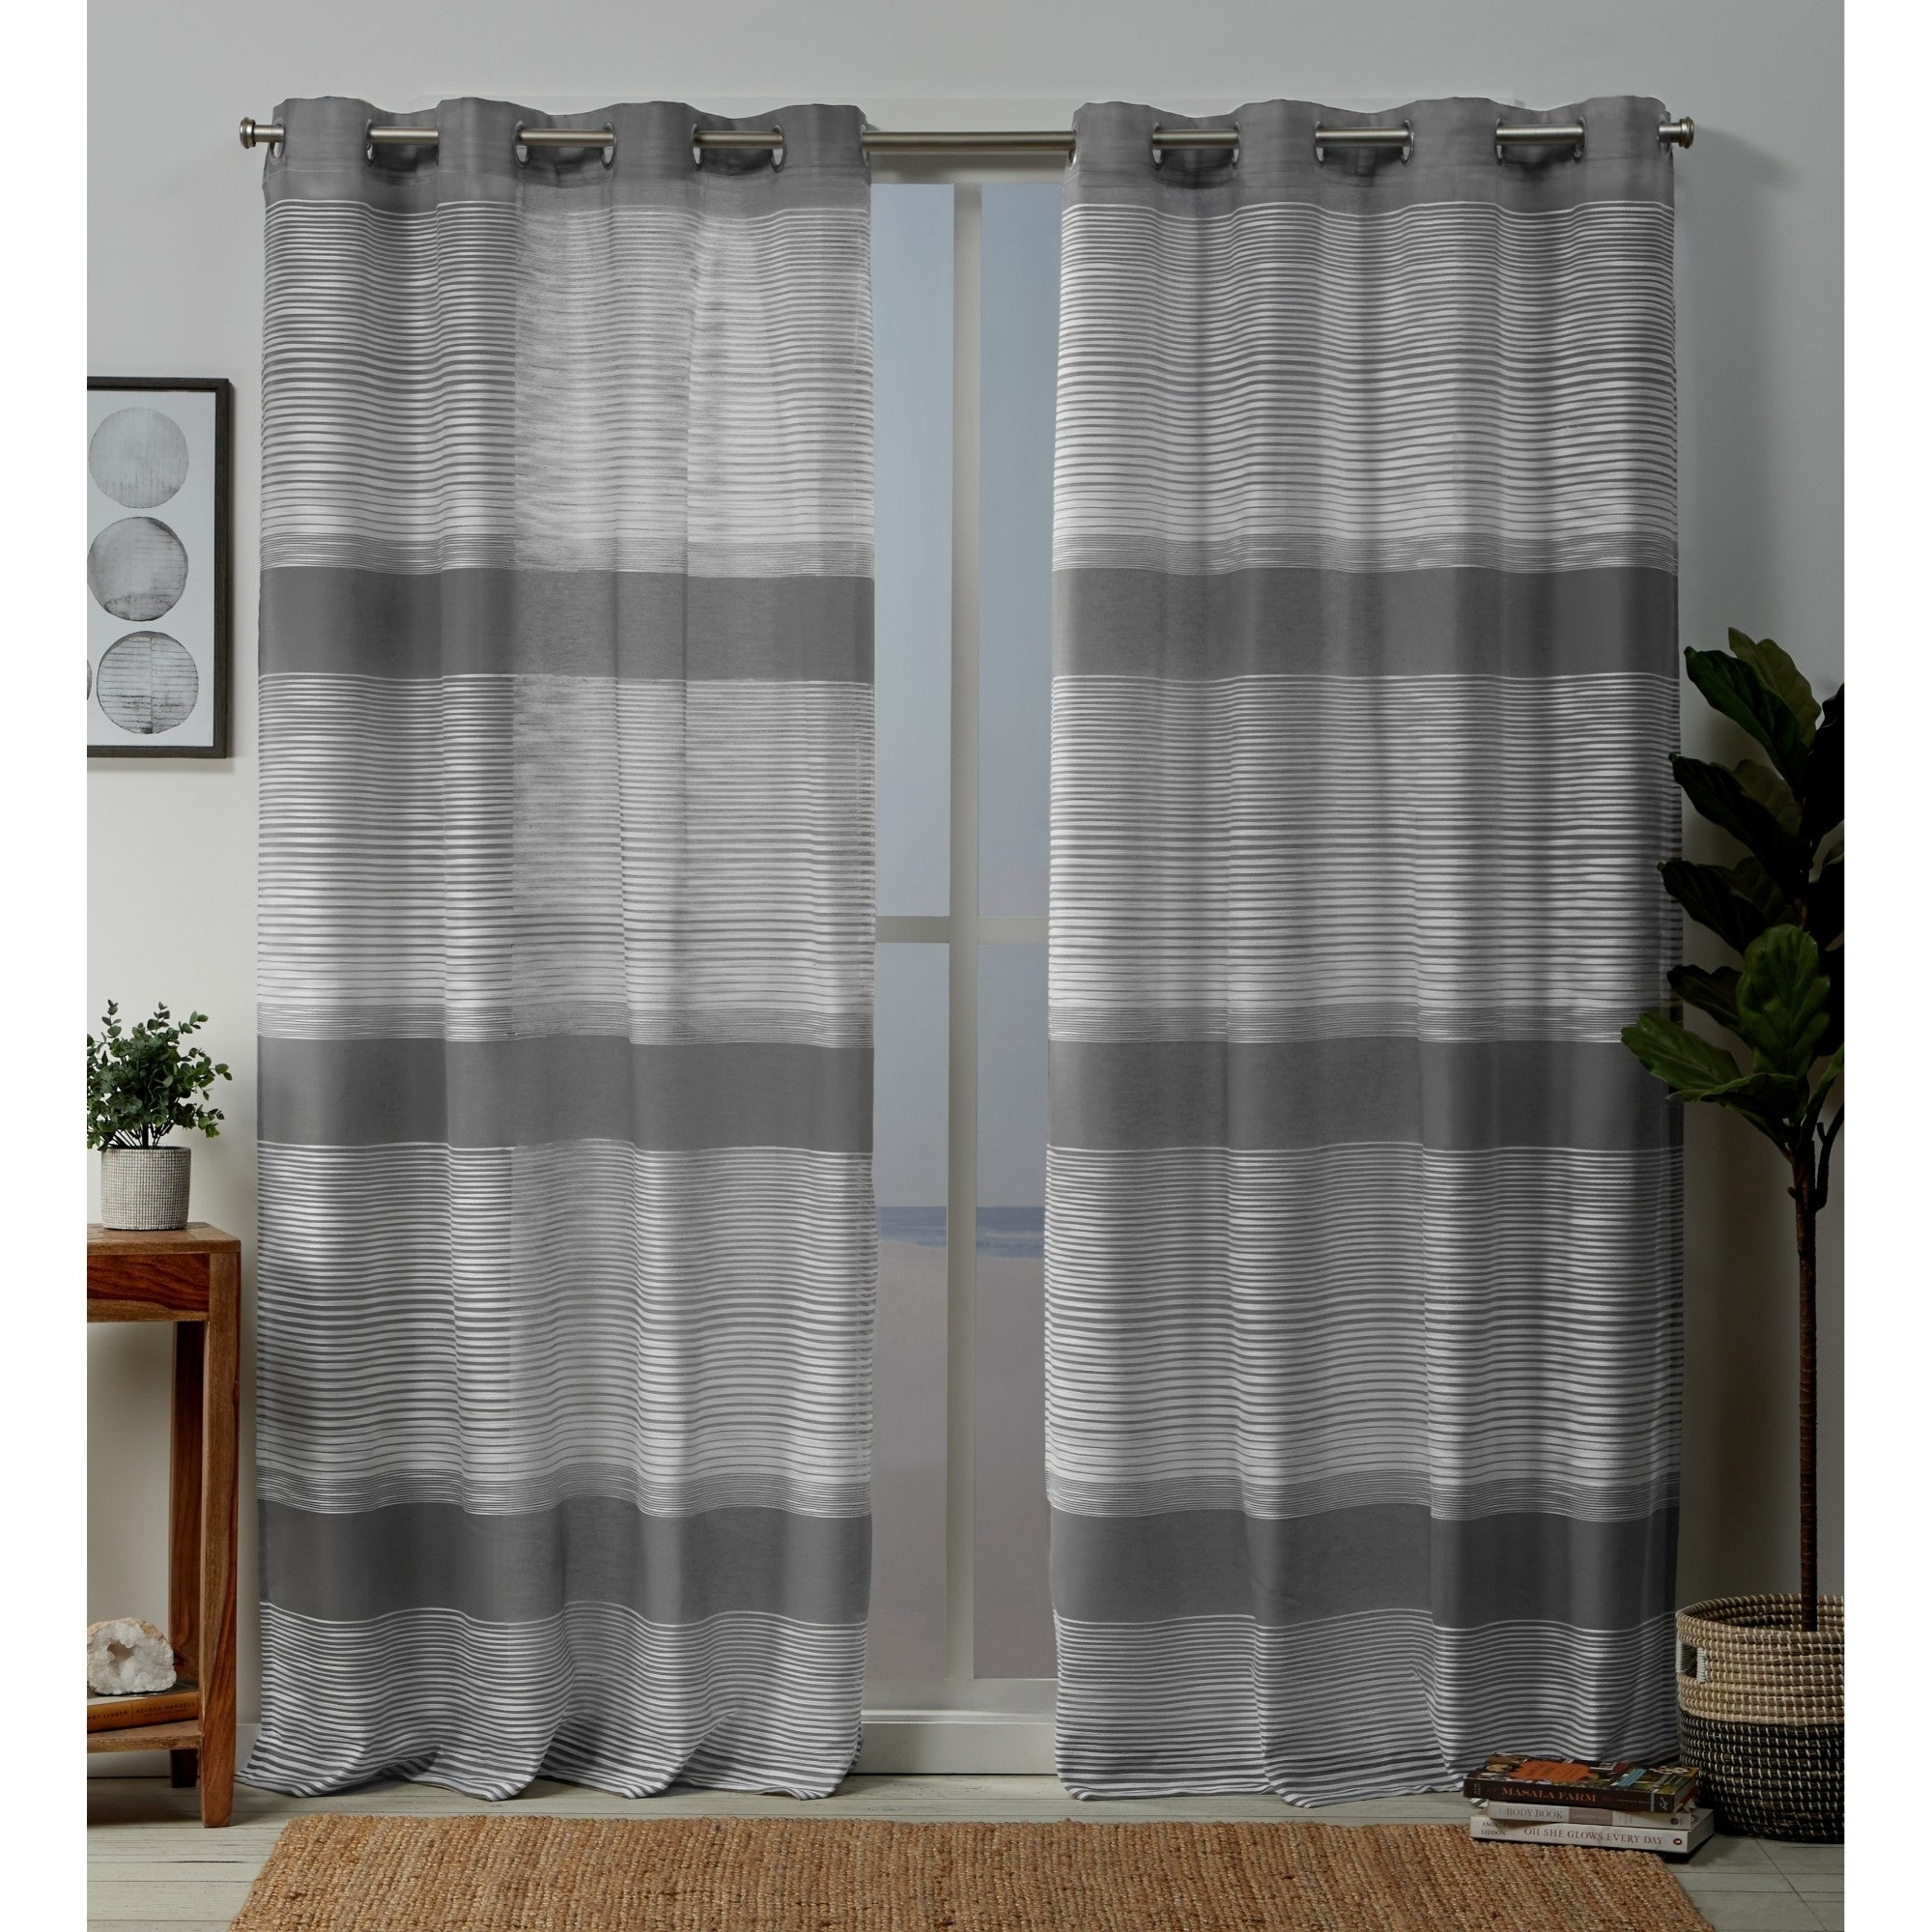 Copper Grove Panagyurishte Striped Grommet Top Curtain Panel Pair Regarding Ombre Stripe Yarn Dyed Cotton Window Curtain Panel Pairs (View 10 of 20)